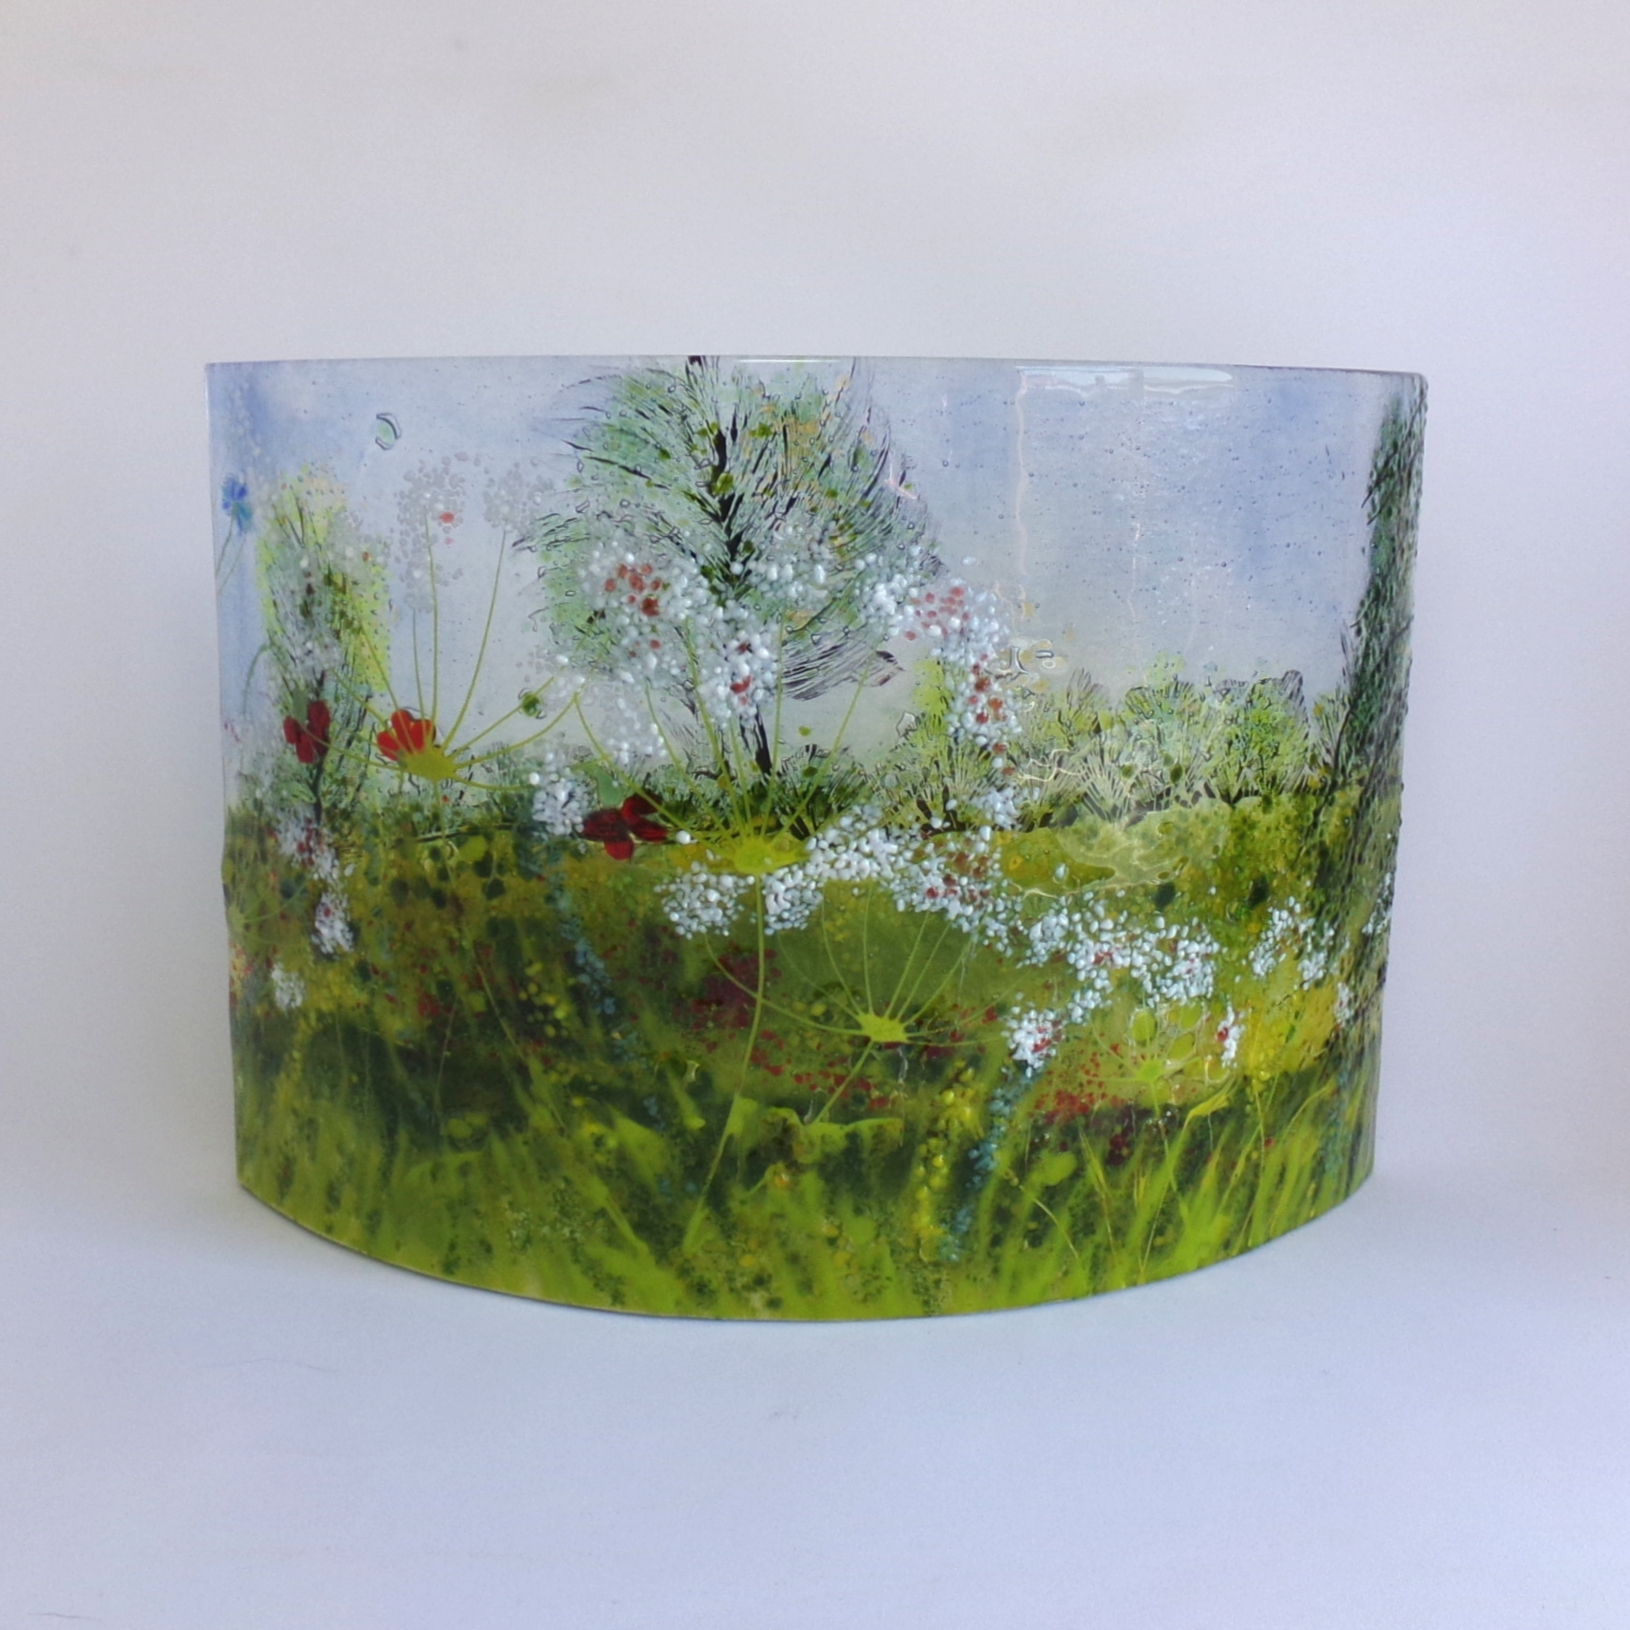 Curved Glass Sculpture Meadow Scene